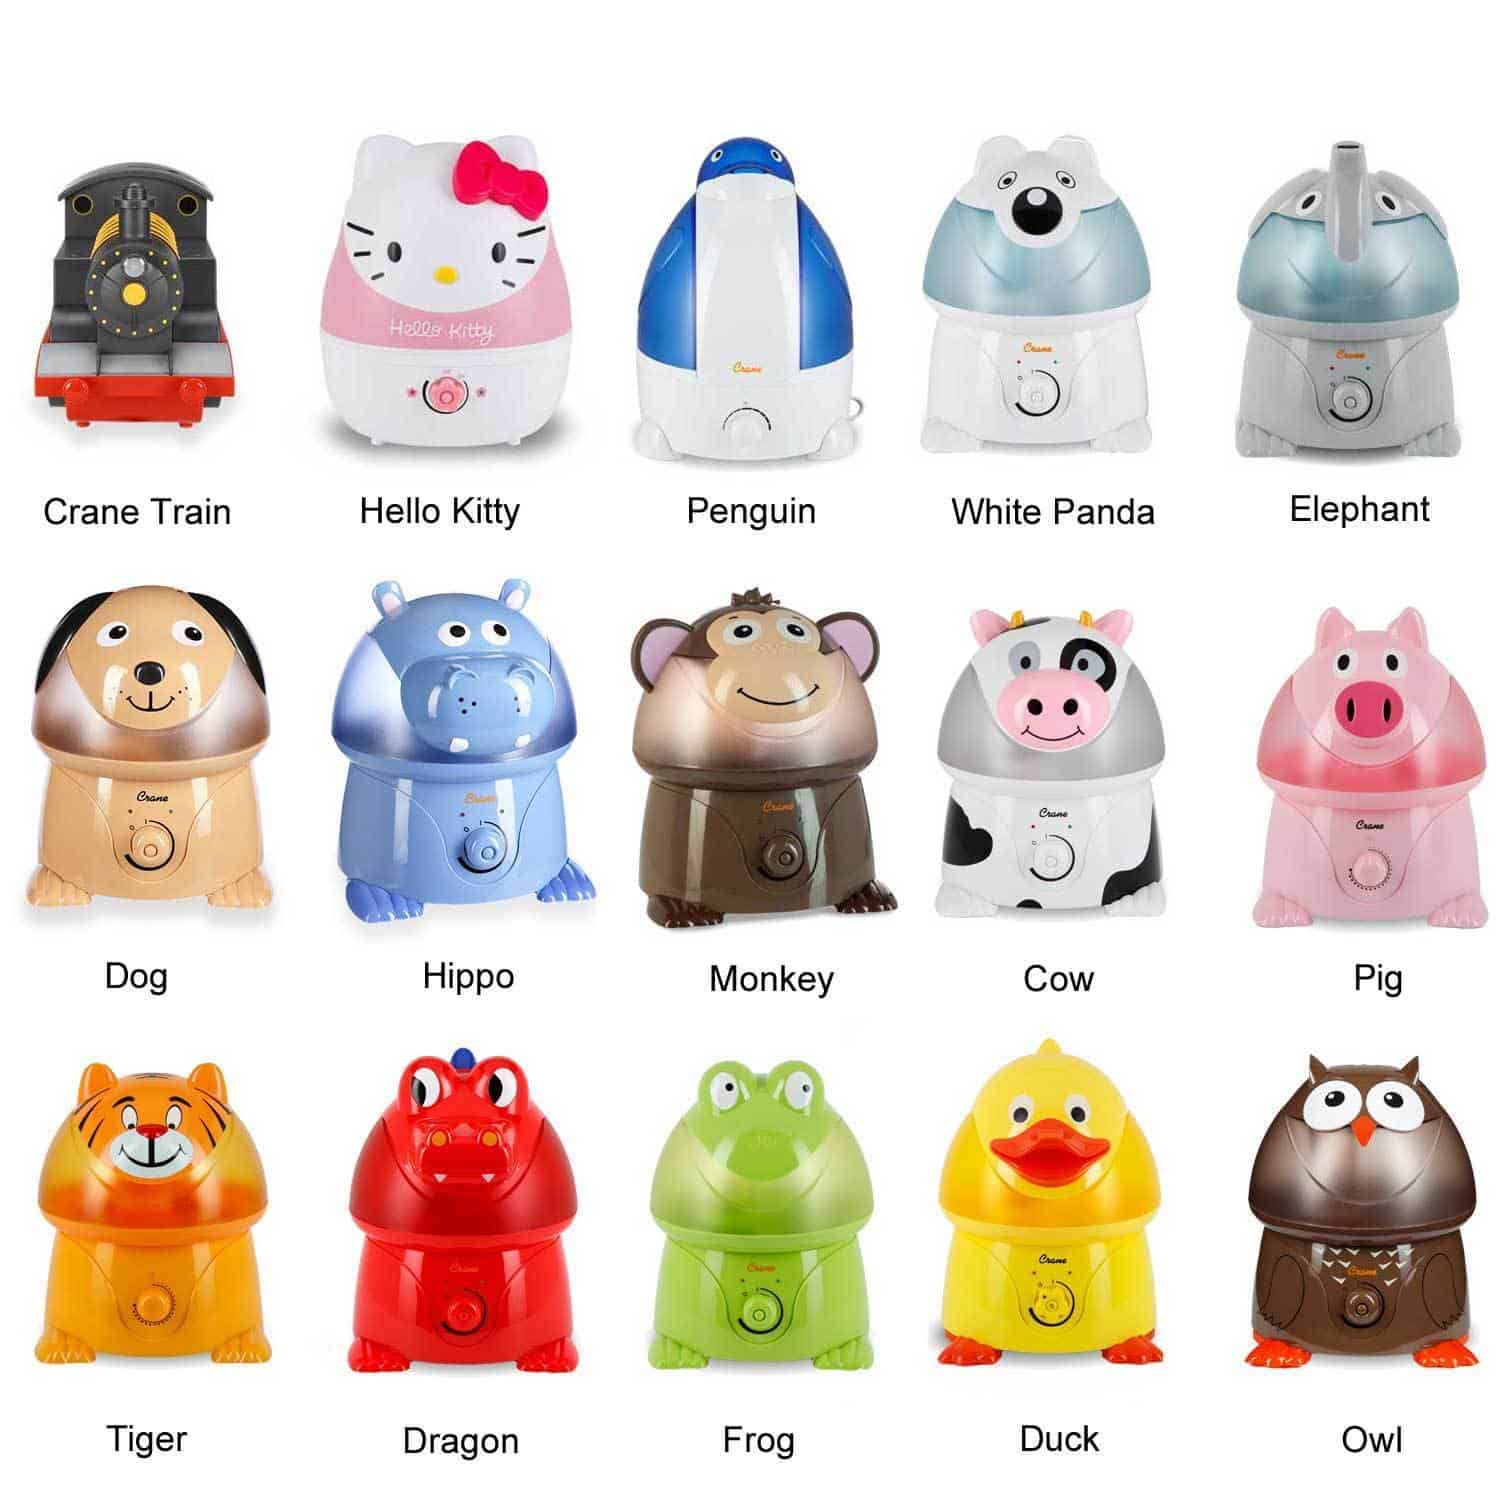 A collection of animal shaped humidifiers is displayed